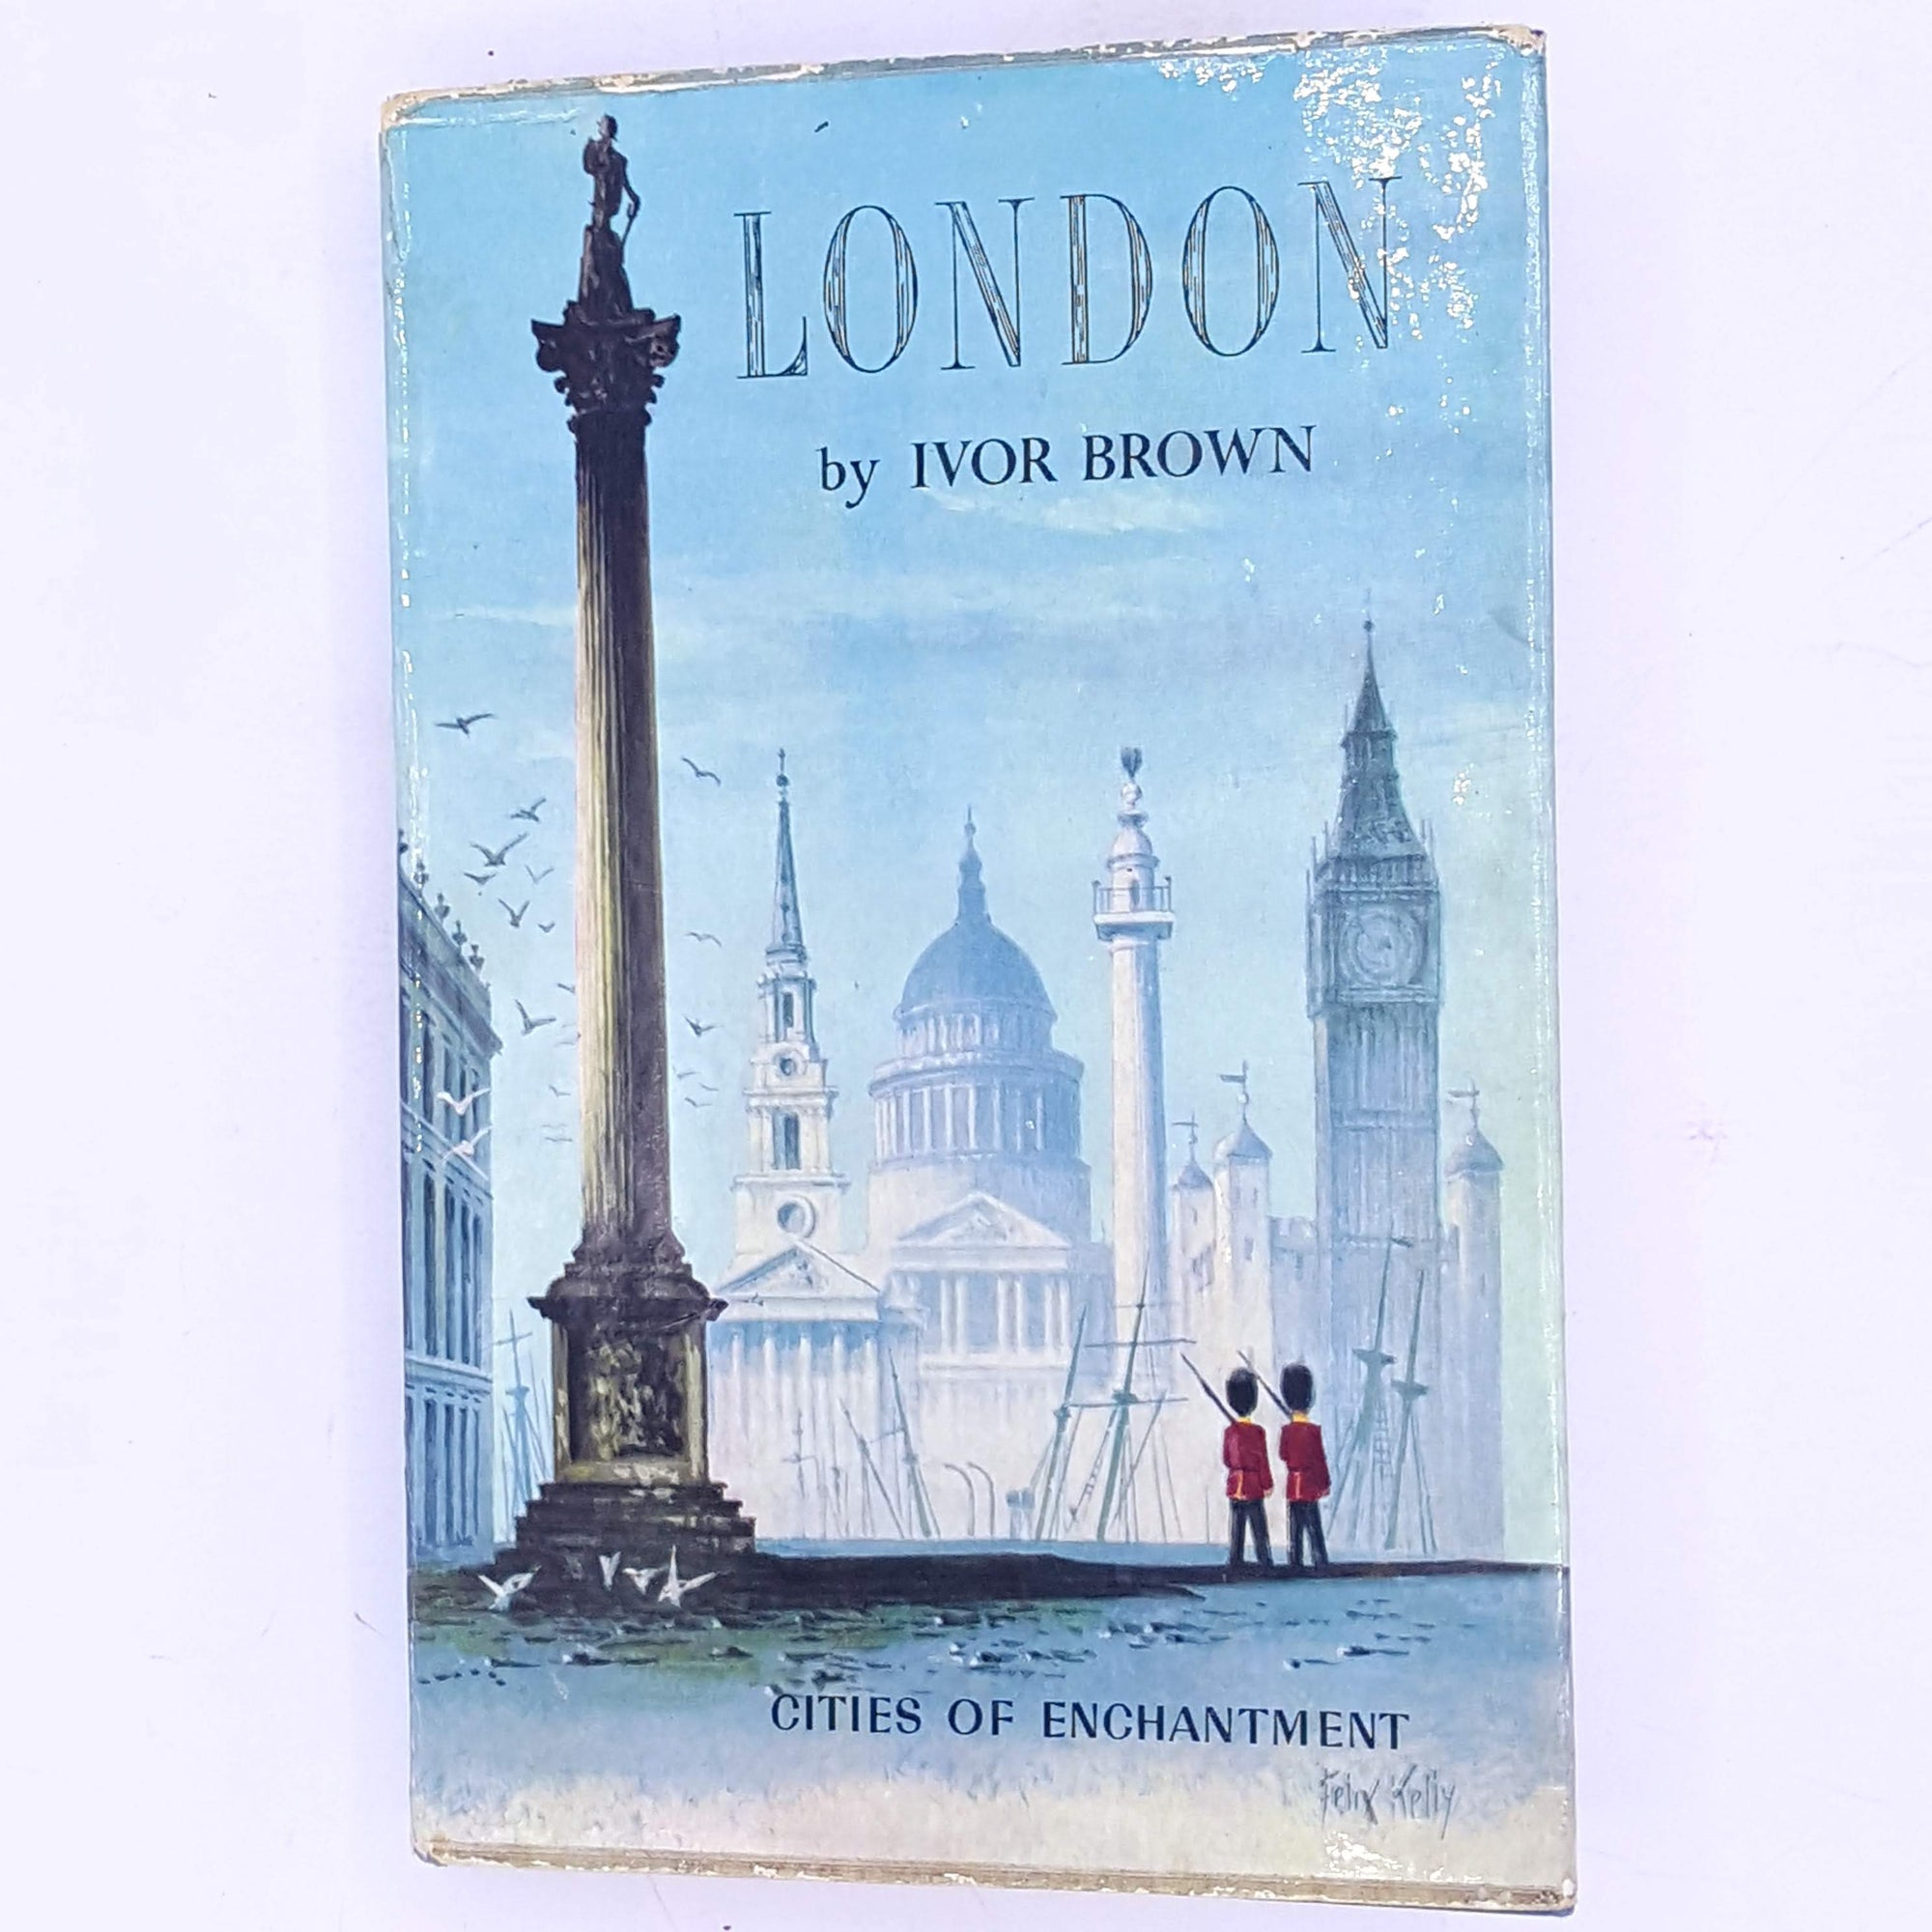 vintage-patterned-old-books-thrift-classic-decorative-antique-london-england-britain-uk-history-geography-country-house-library-cities-of-enchantment-london-ivor-brown-